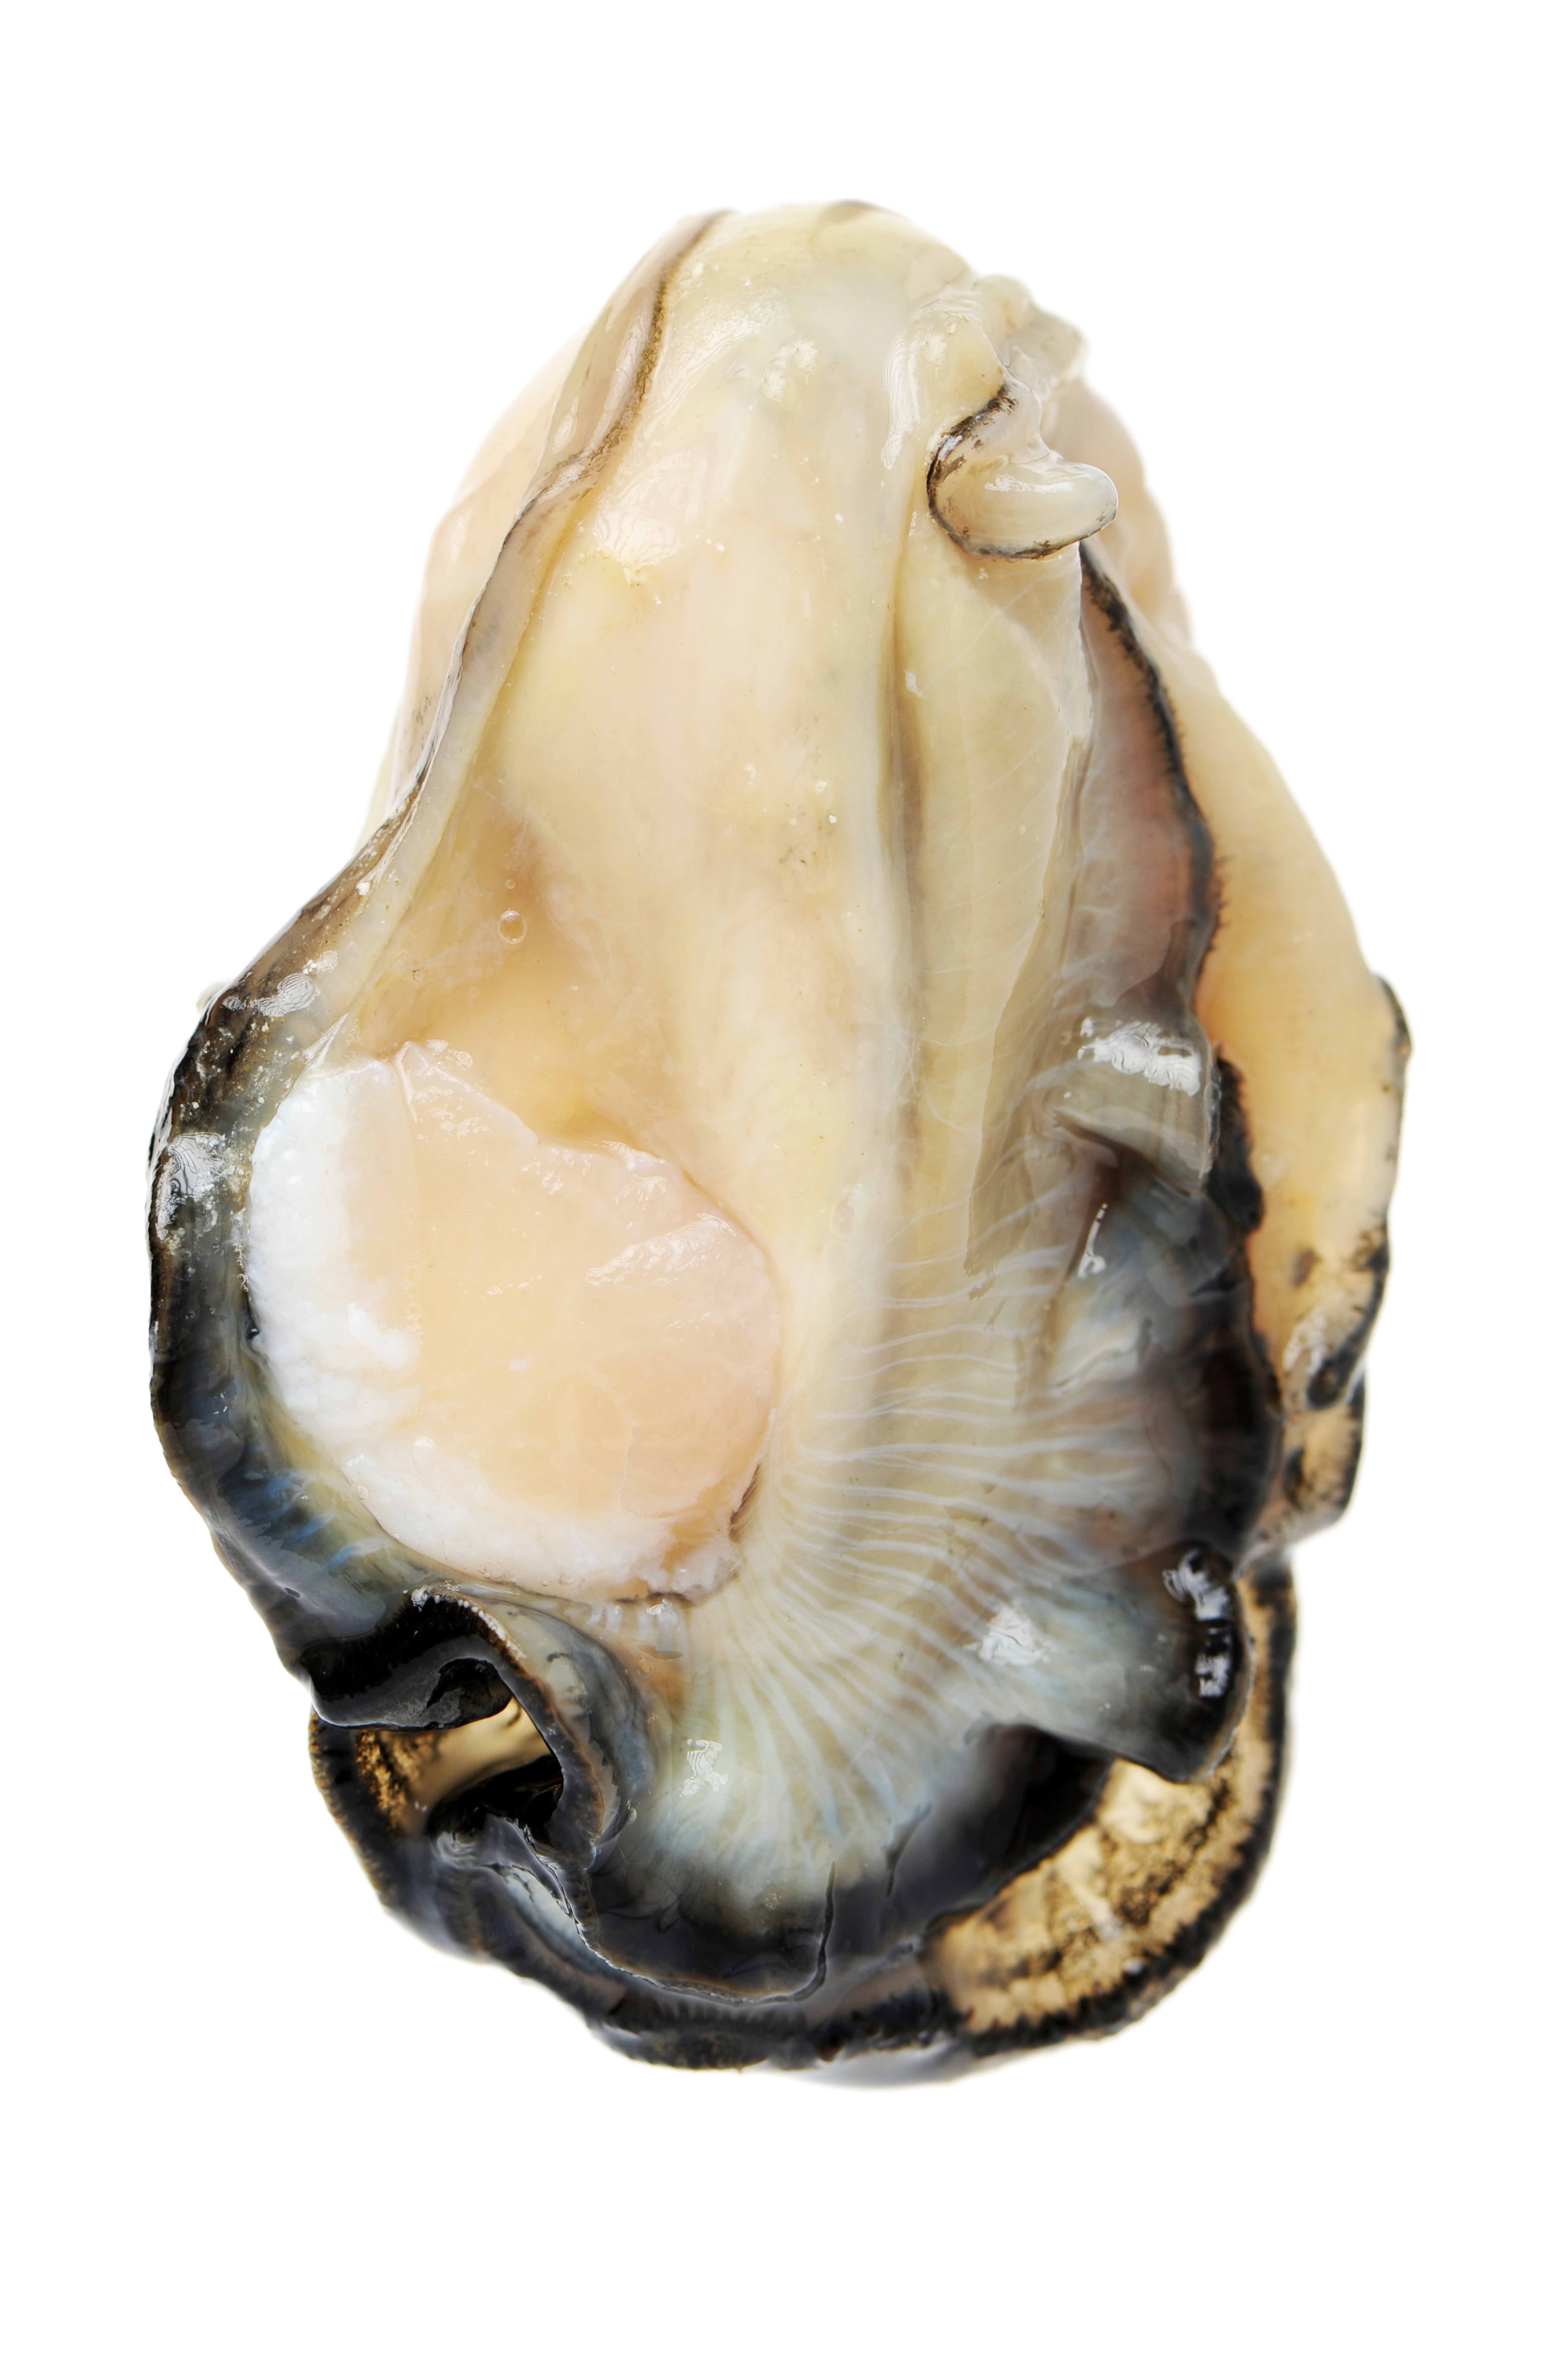 West Coast Oyster Meat | Stavis Seafoods